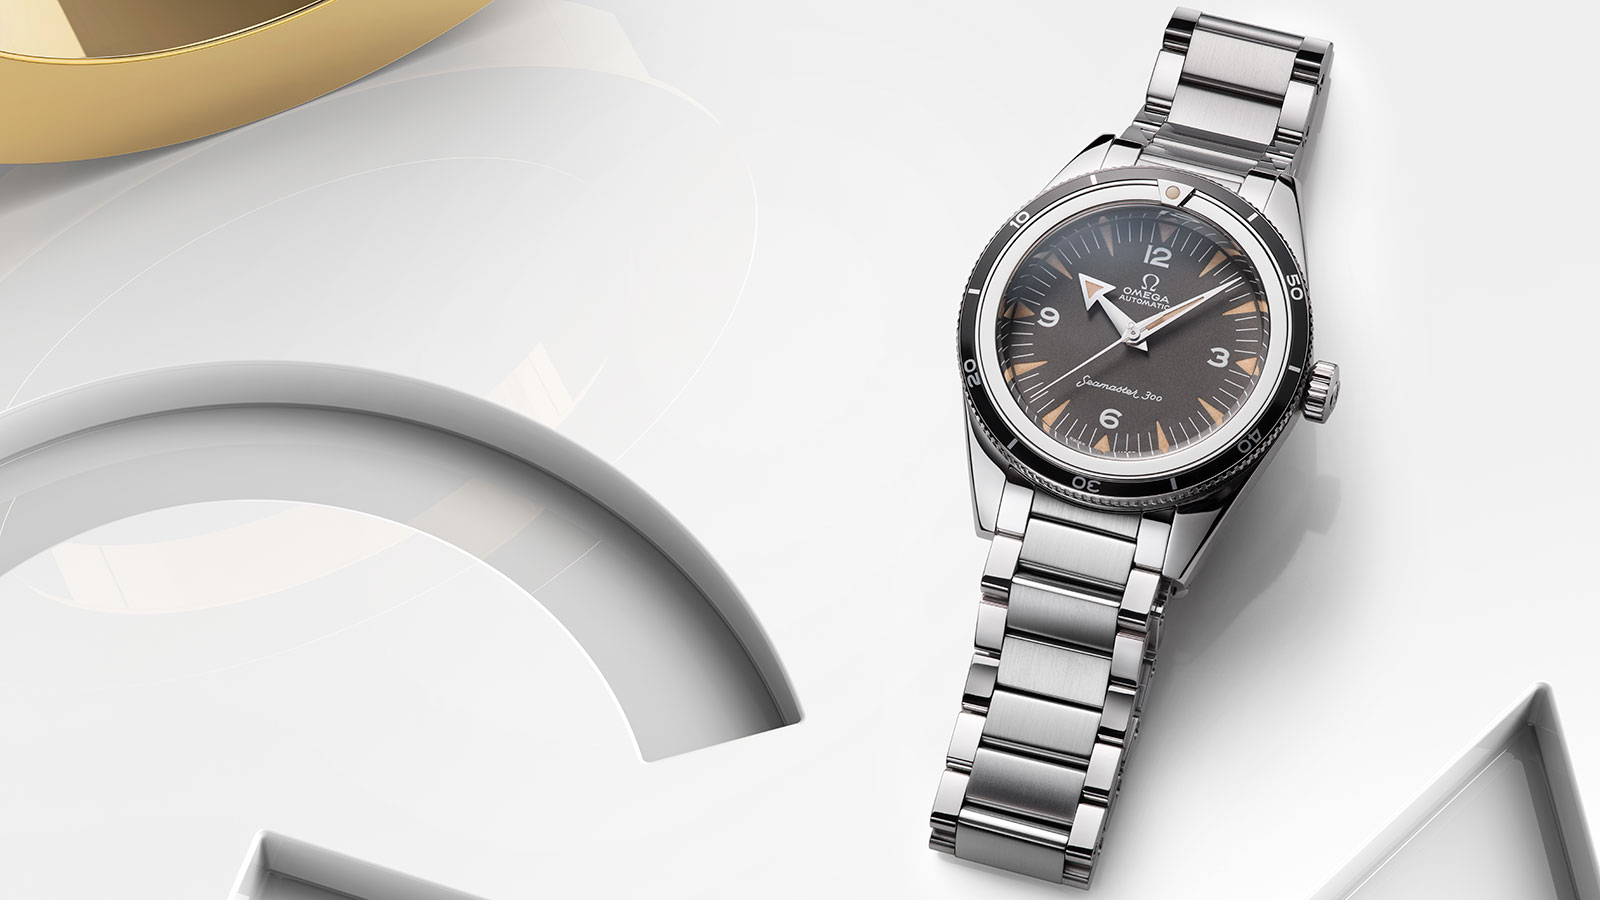 Seamaster The Collection Seamaster 300 Omega Co‑Axial Master Chronometer 39 mm Watch - 234.10.39.20.01.001